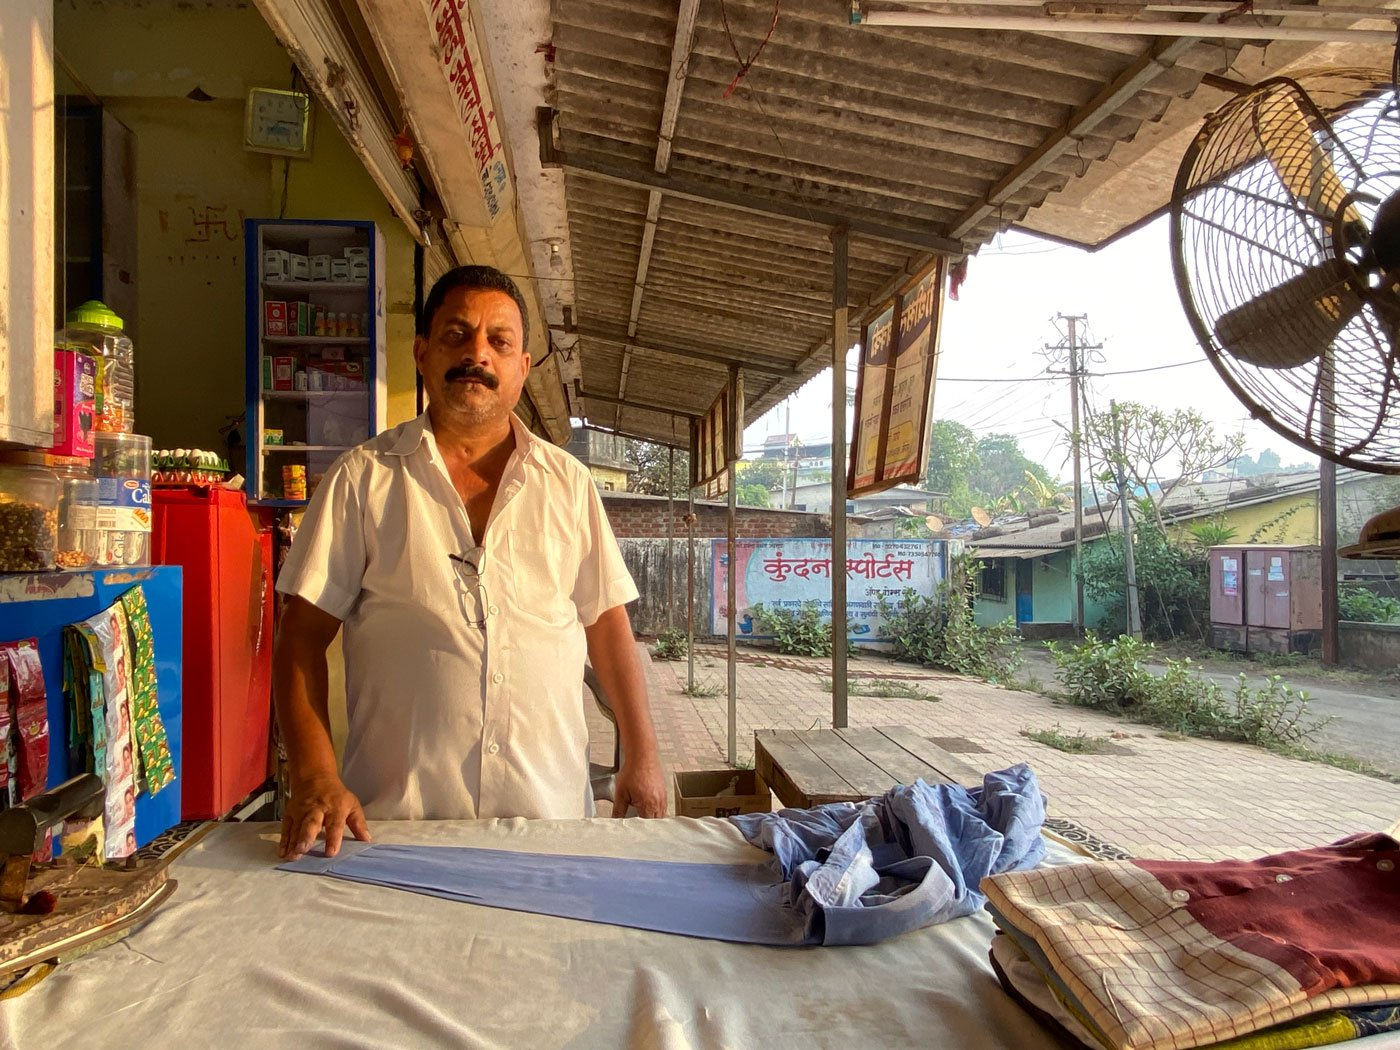 For families in Vada town of Palghar district who make a living by ironing clothes, the Covid-19 lockdown has reduced  daily incomes to a trickle. Many are struggling to procure rations and seeking other work